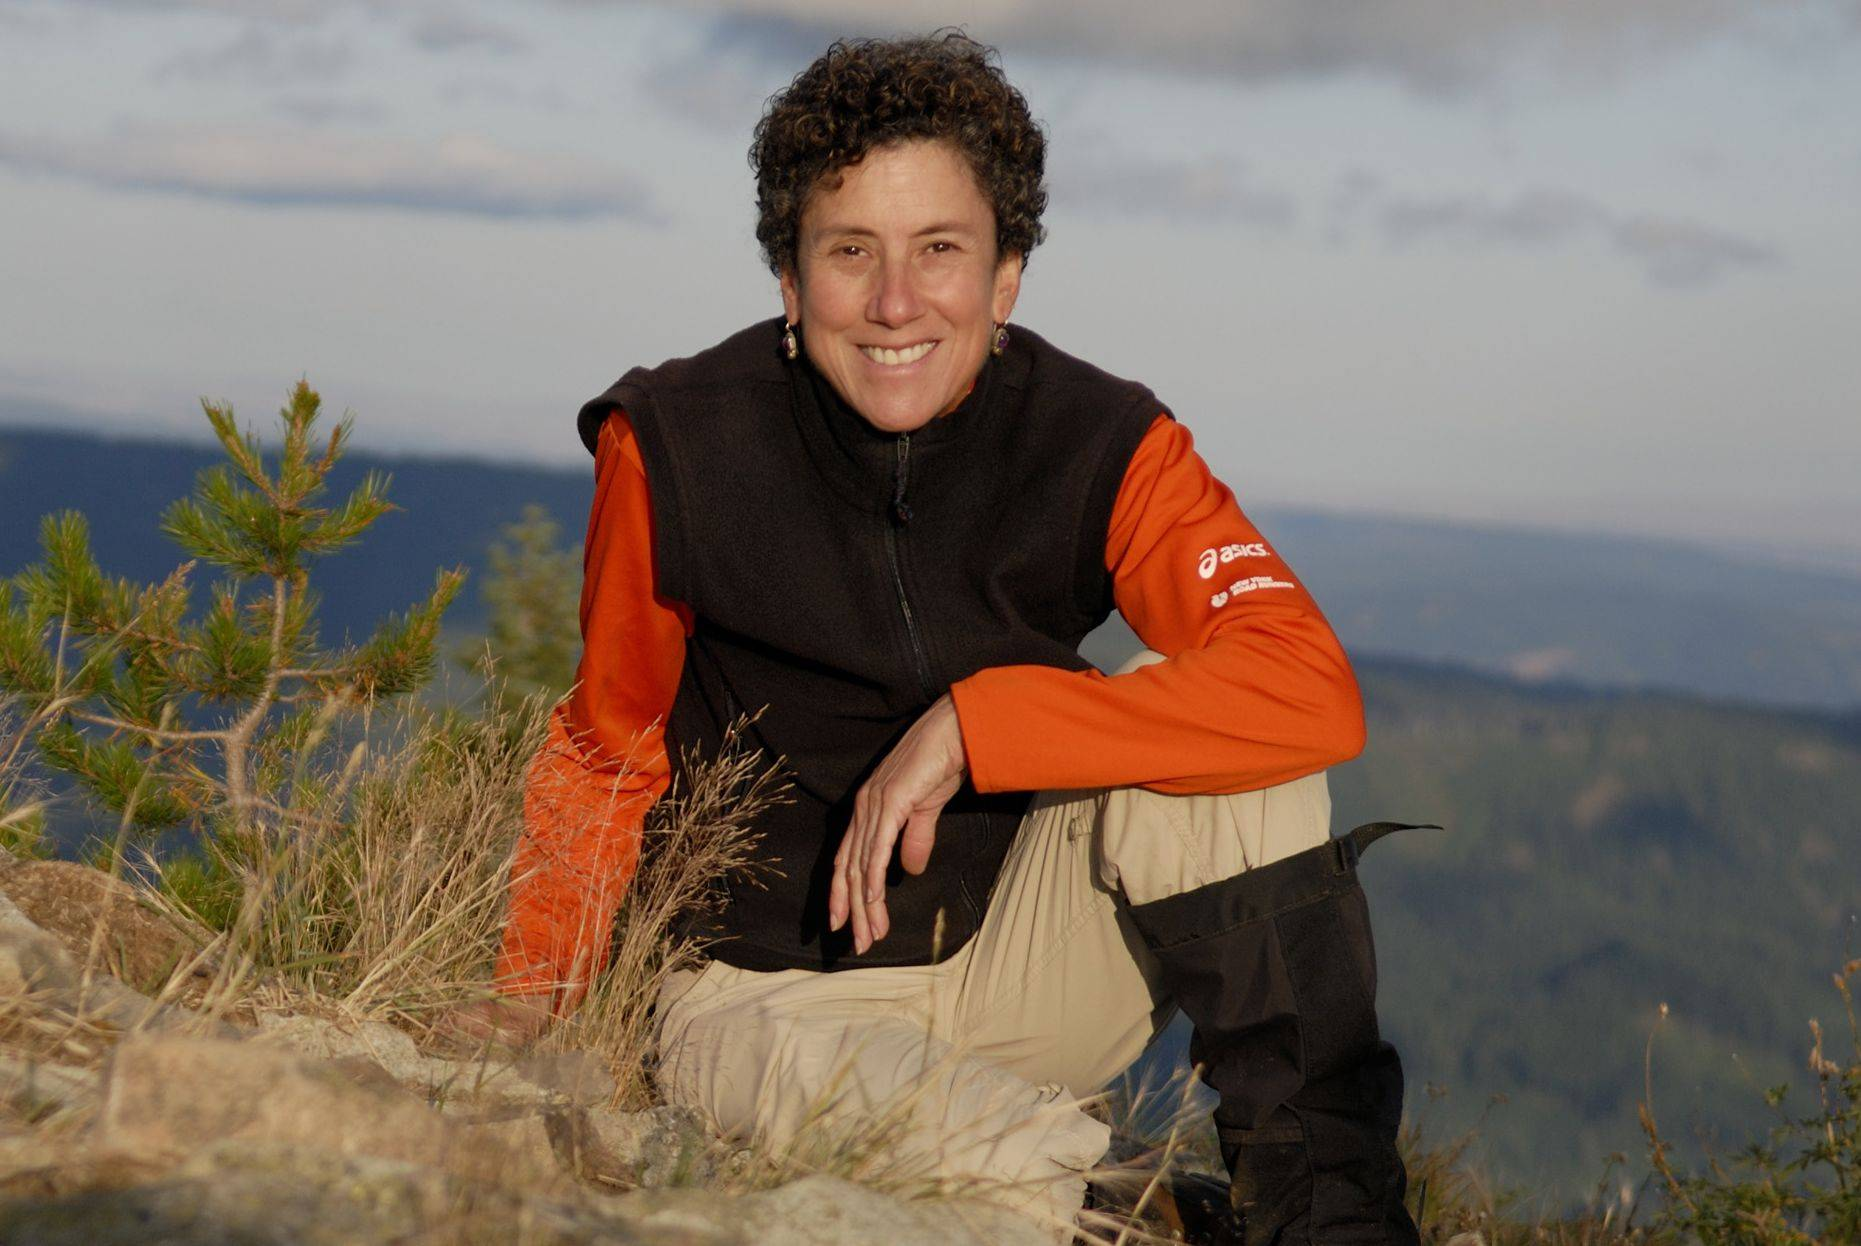 Barbara I. Bond of Geneva is atop Little Huckleberry Mountain in the state of Washington during one of her hikes.